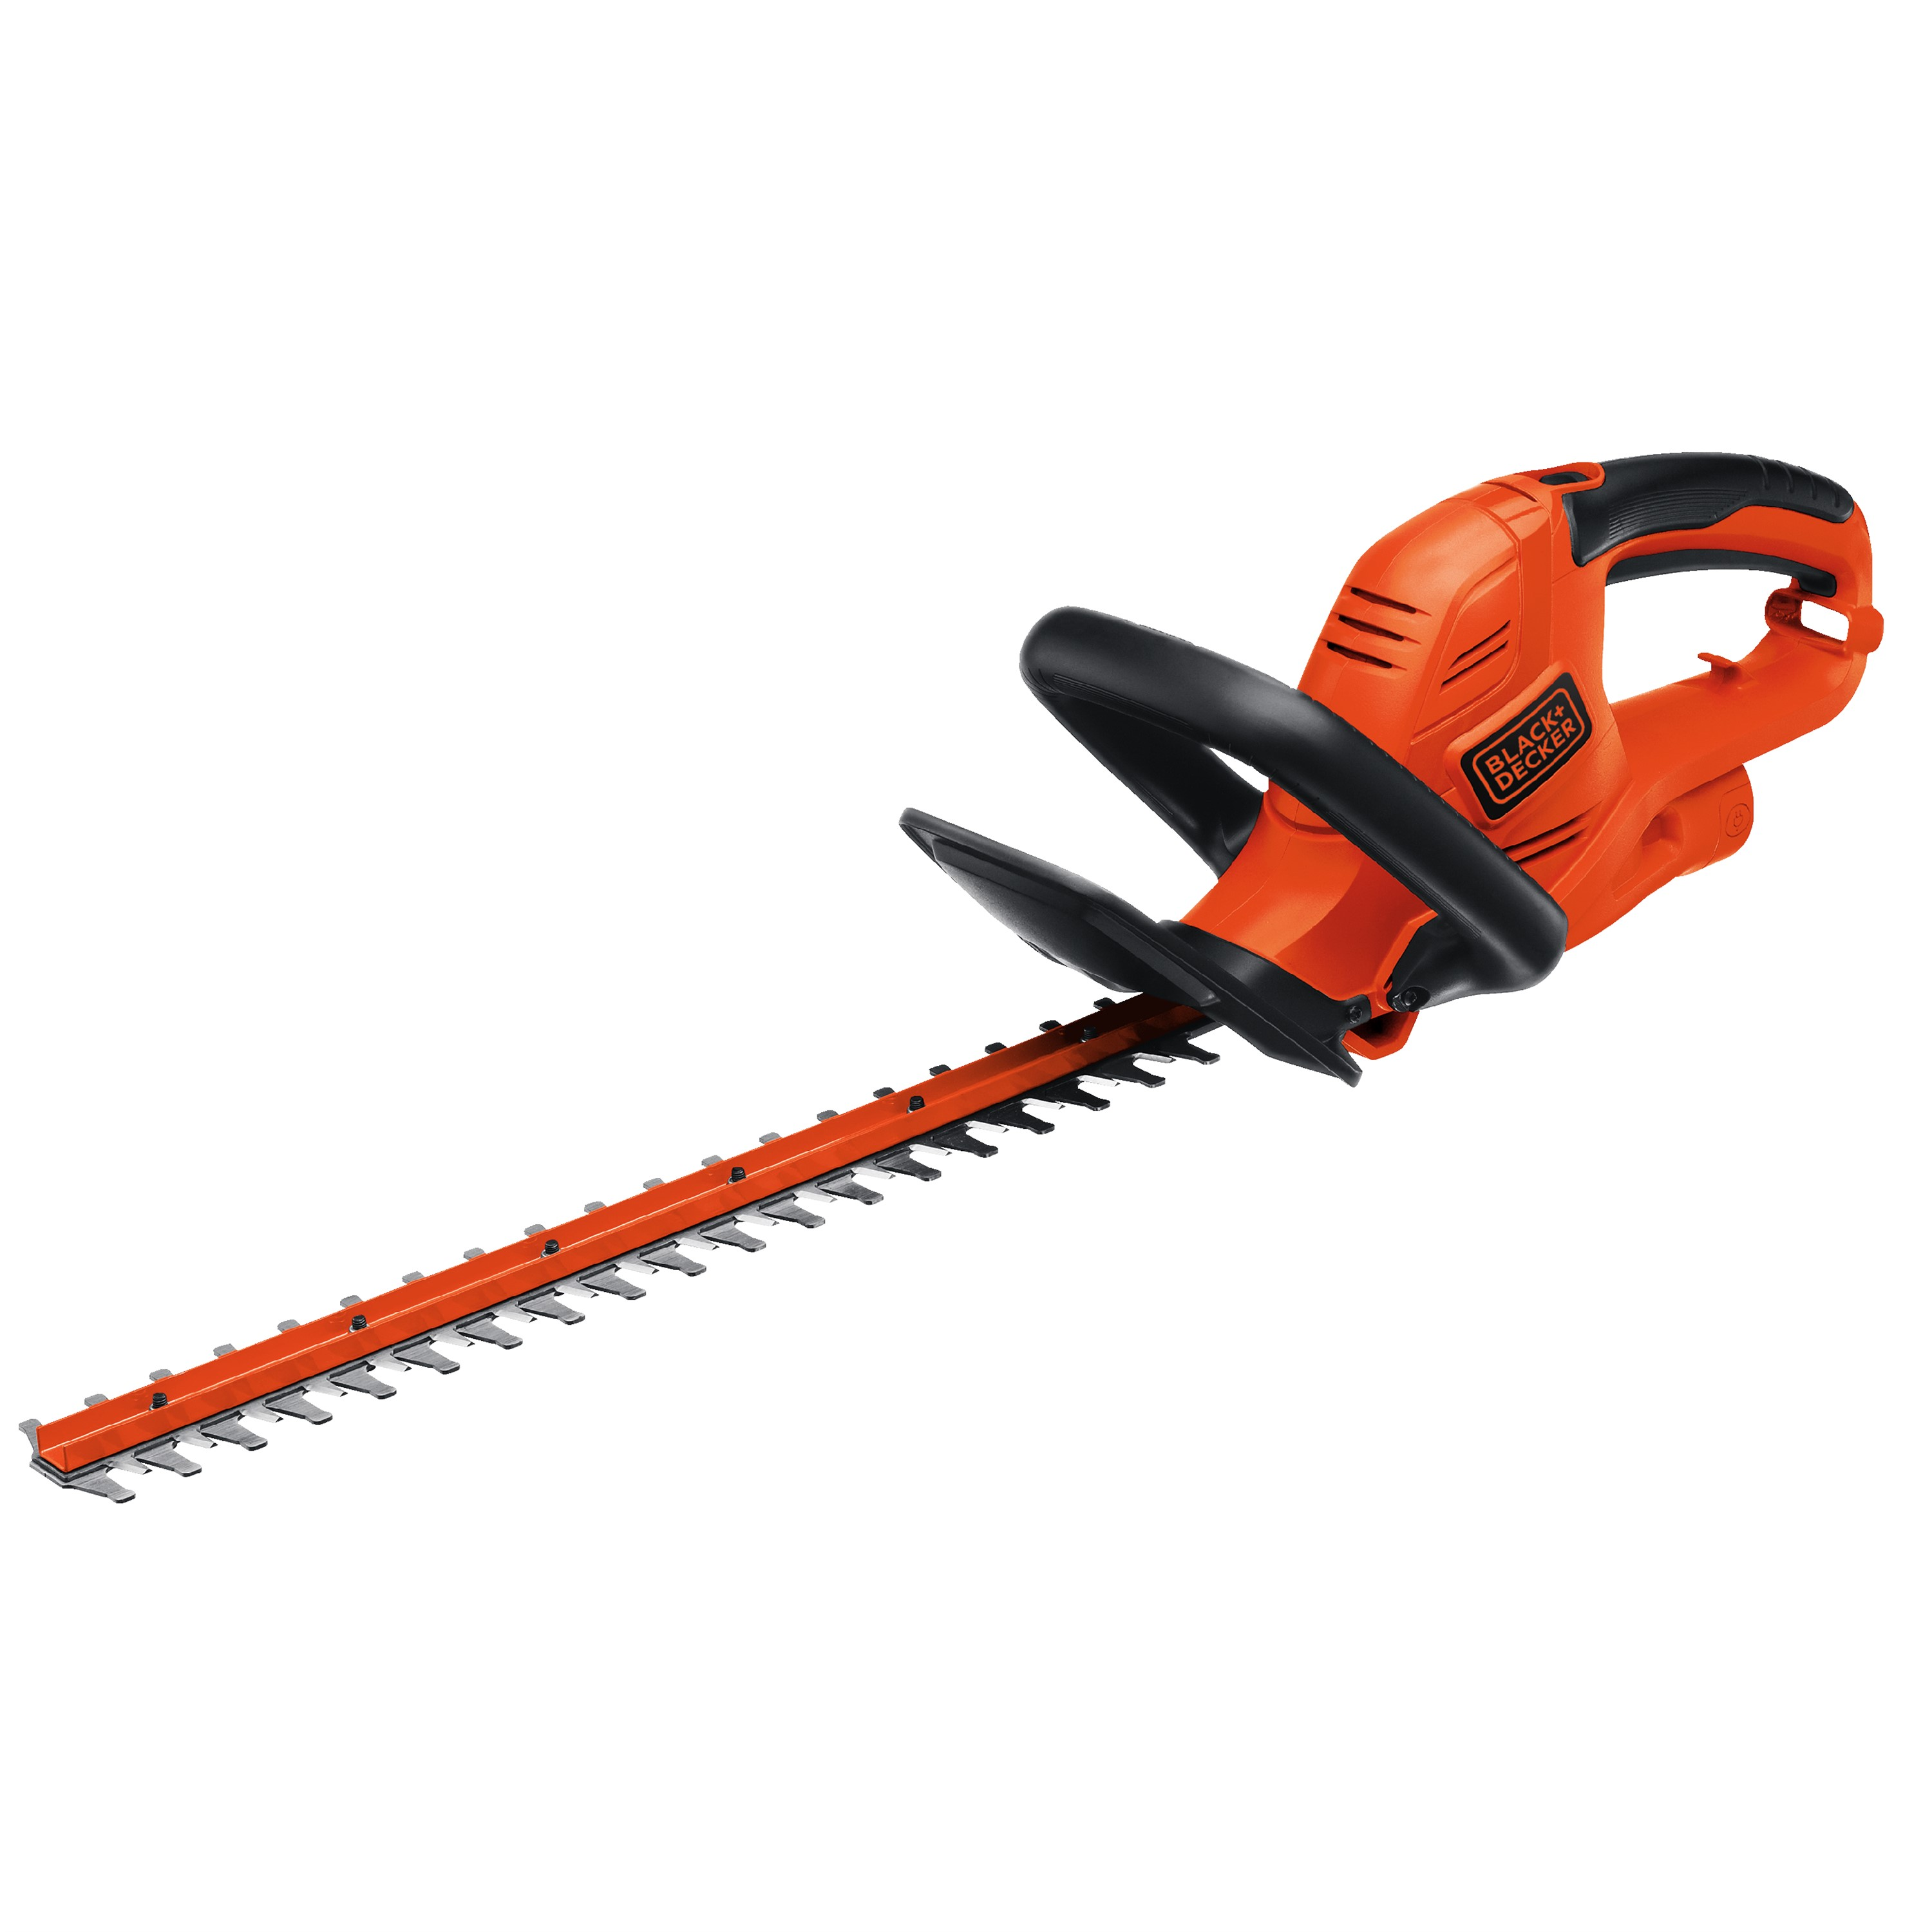 """Black & Decker HT22 4.0 Amp 22"""" Corded Hedge Trimmer by Hedge Trimmers"""